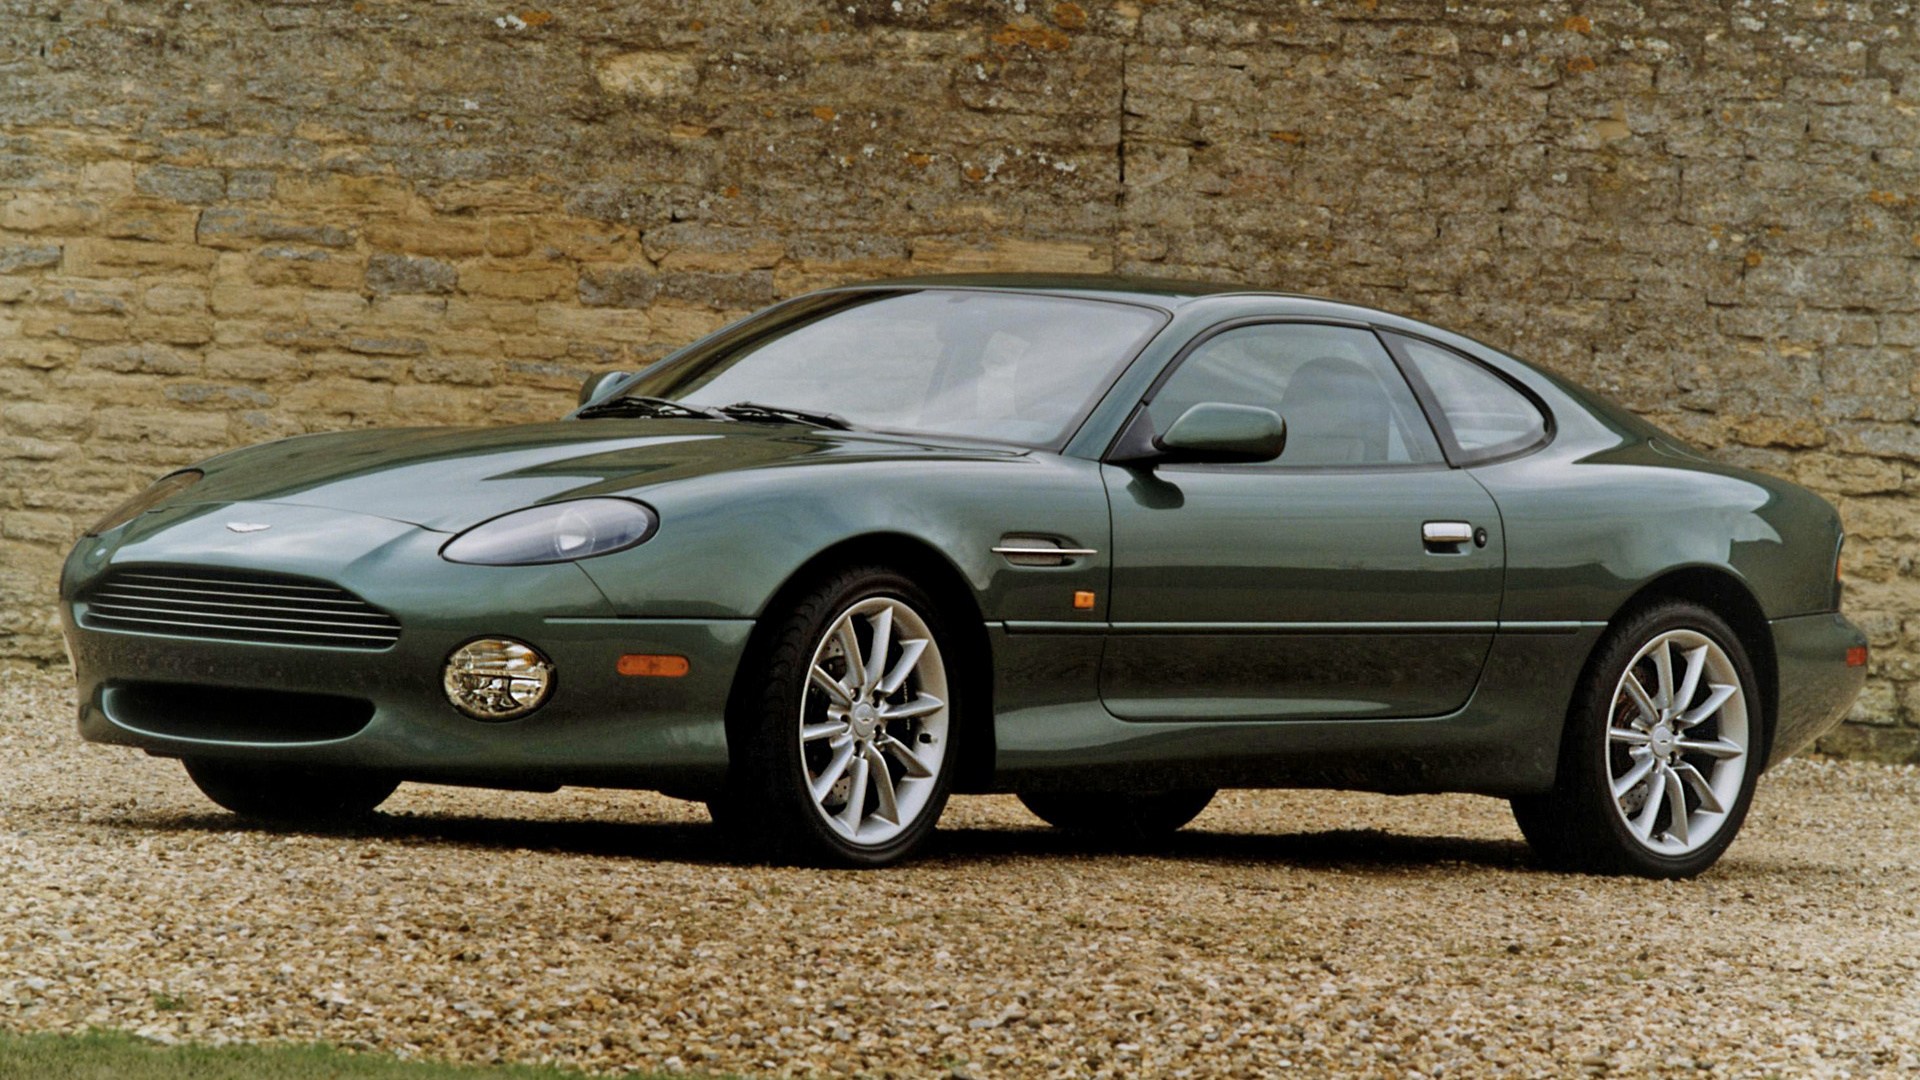 aston martin db7 vantage (1999) us wallpapers and hd images - car